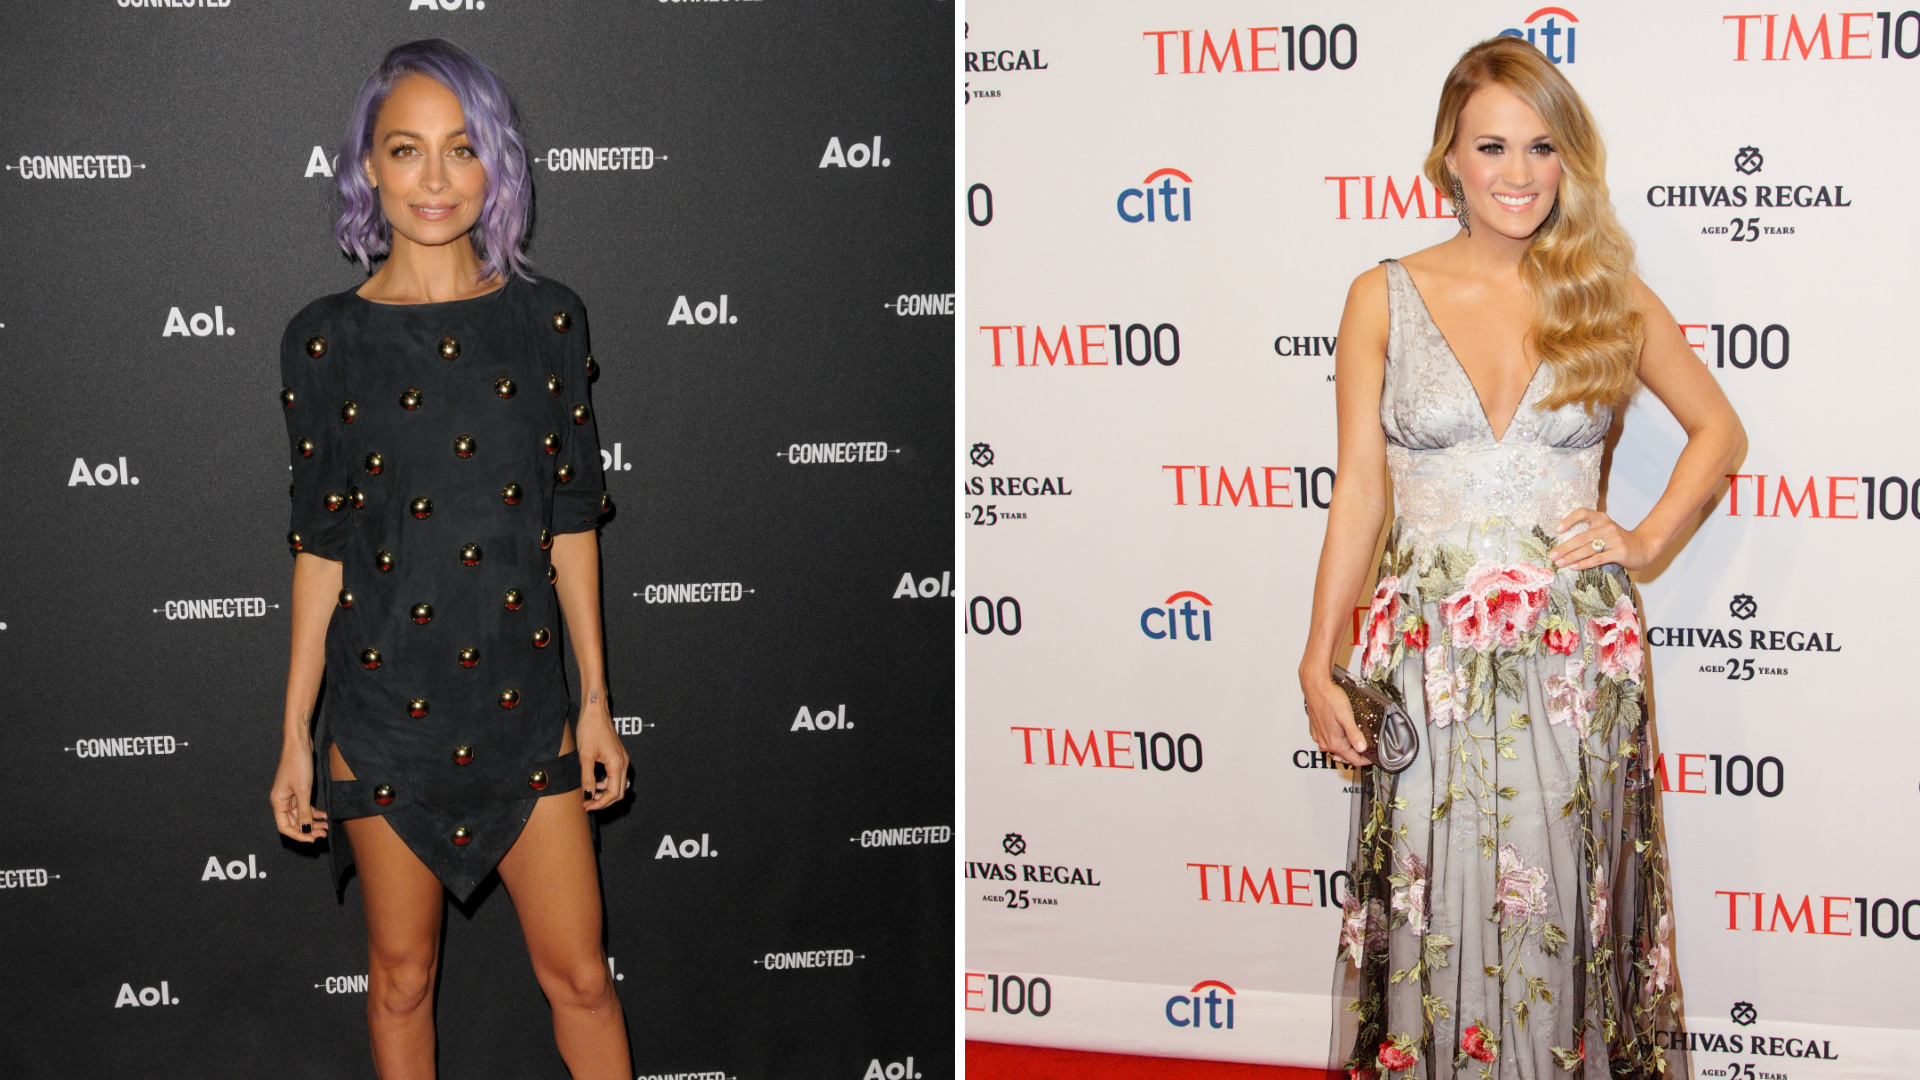 Friday's Fashion Fails: Nicole Richie and Carrie Underwood